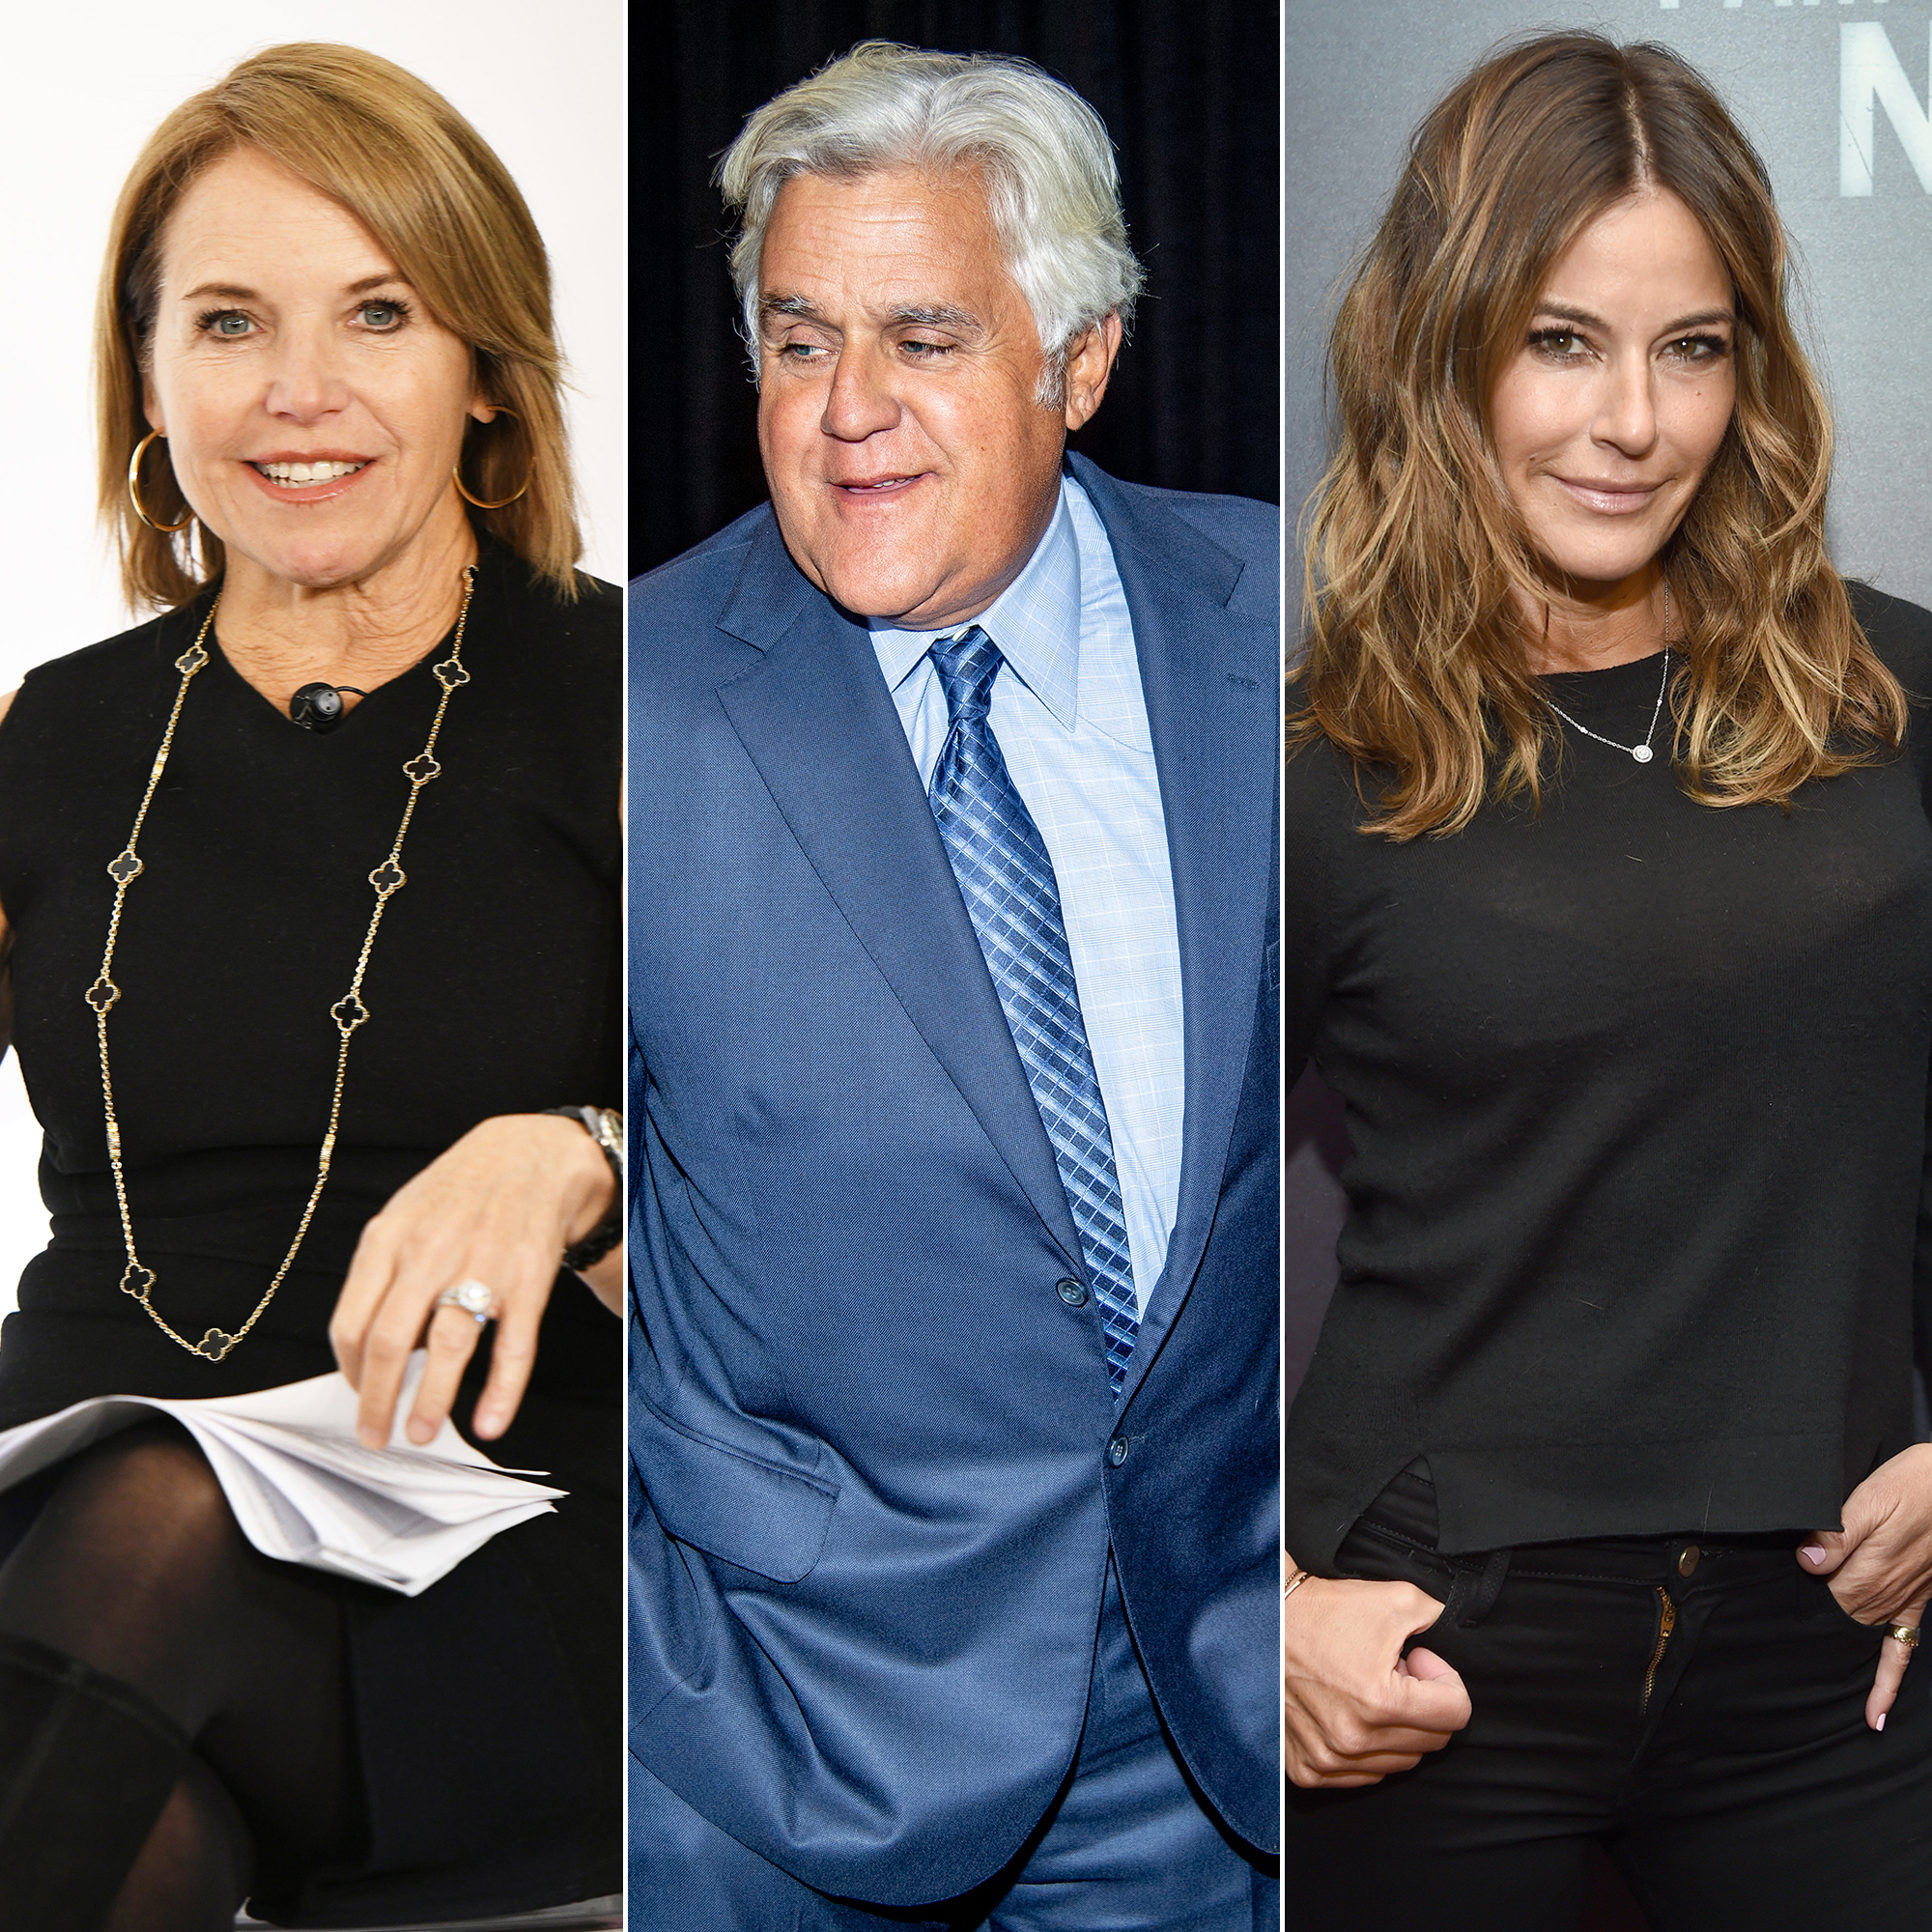 Katie Couric, Jay Leno and More Stars Still Reeling Over College Admissions Scandal - Katie Couric, Jay Leno and Kelly Bensimon.